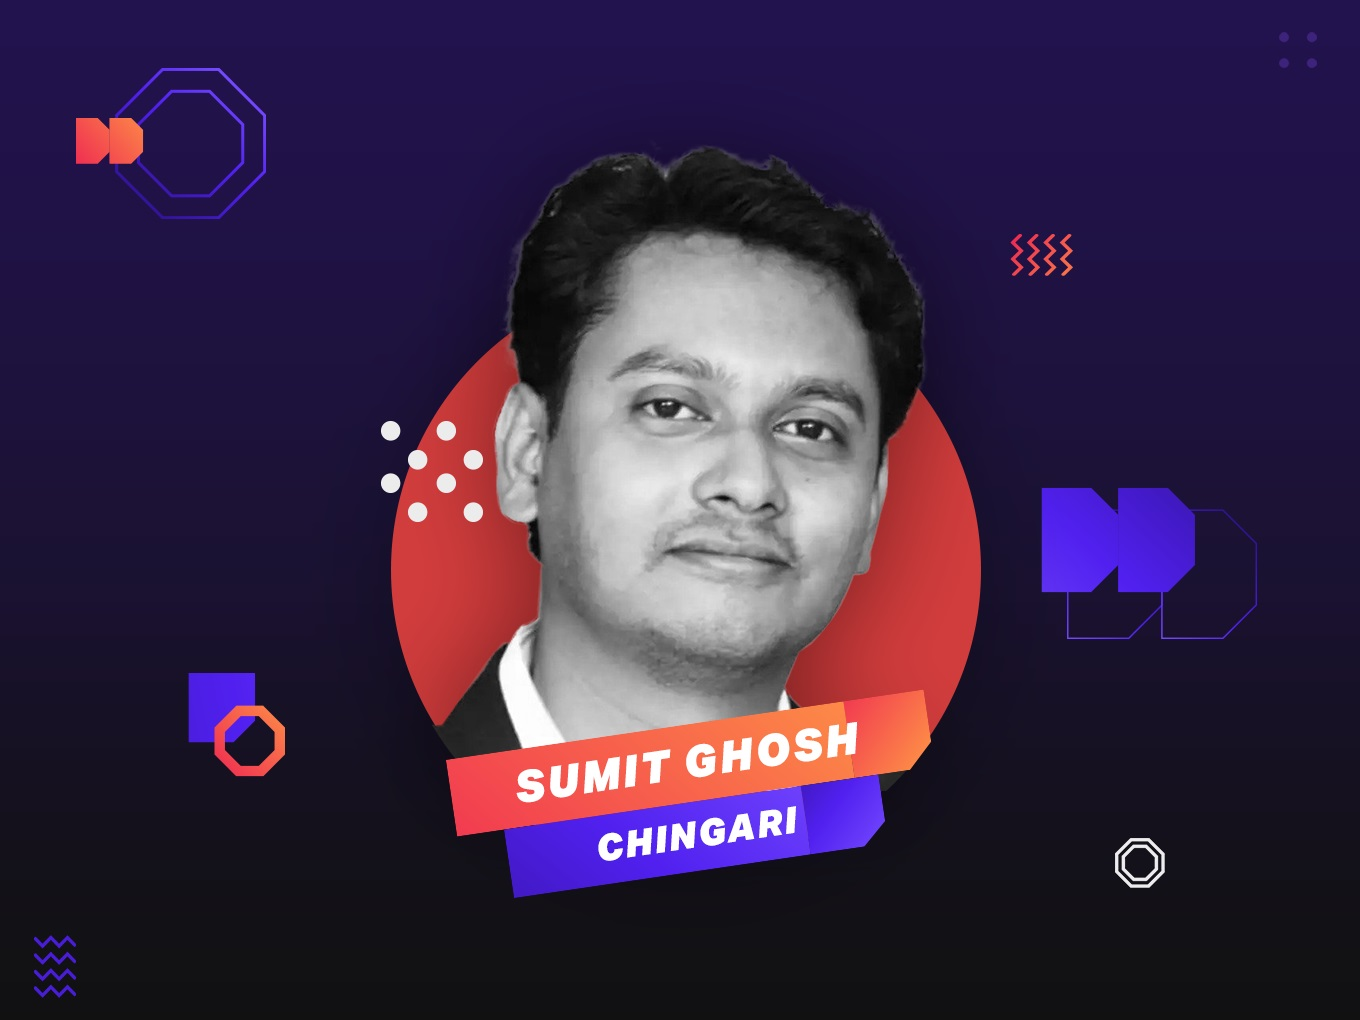 Chingari's Sumit Ghosh On Building A Bharat-First Social Media Platform